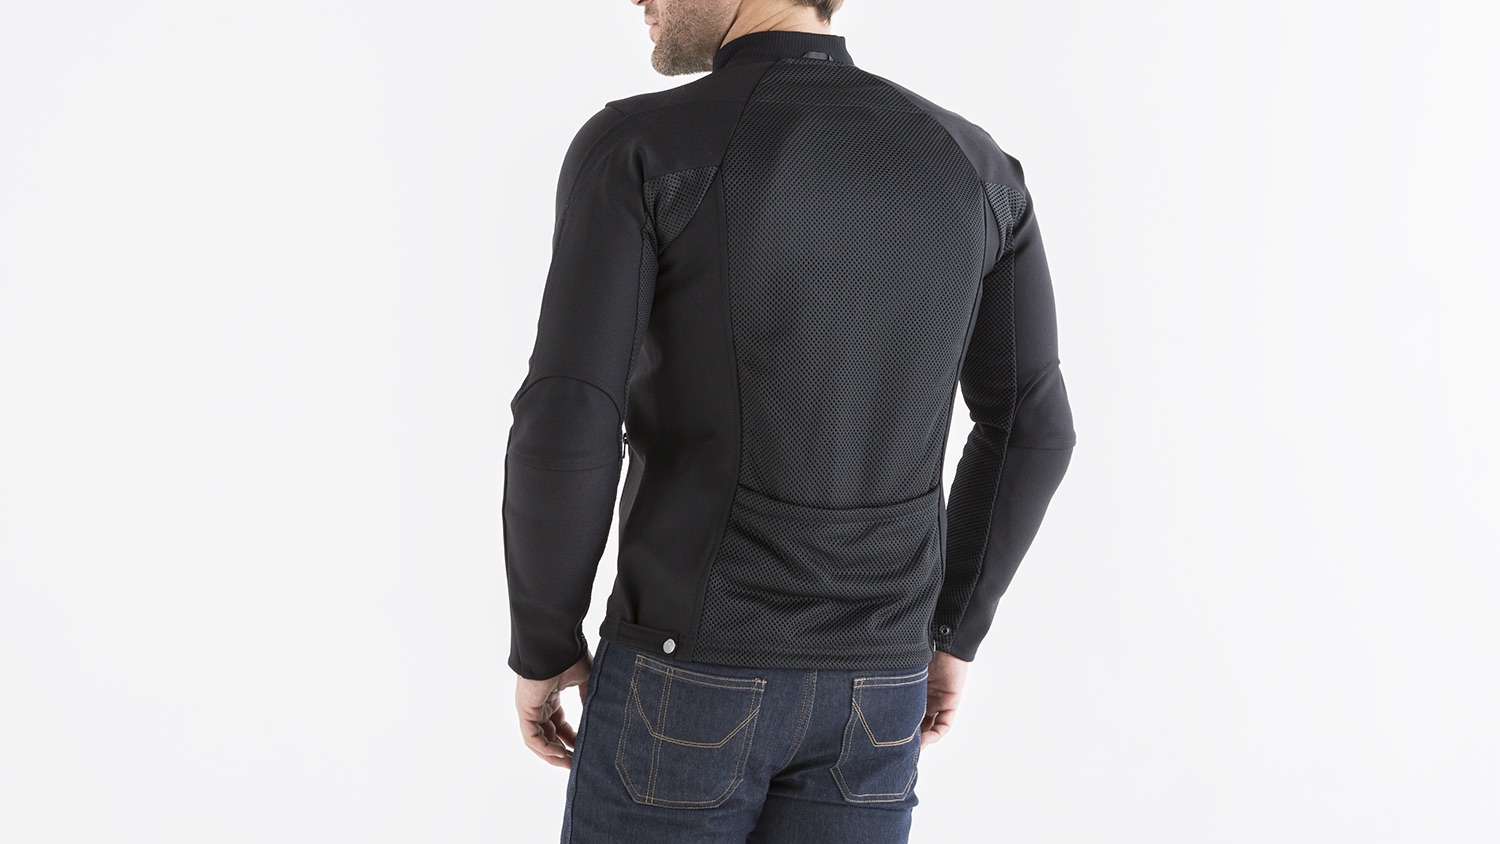 9ca1472b2 KNOX ZEPHYR MENS SUMMER RIDING JACKET - VENTED - WITH ARMOUR, just superb!